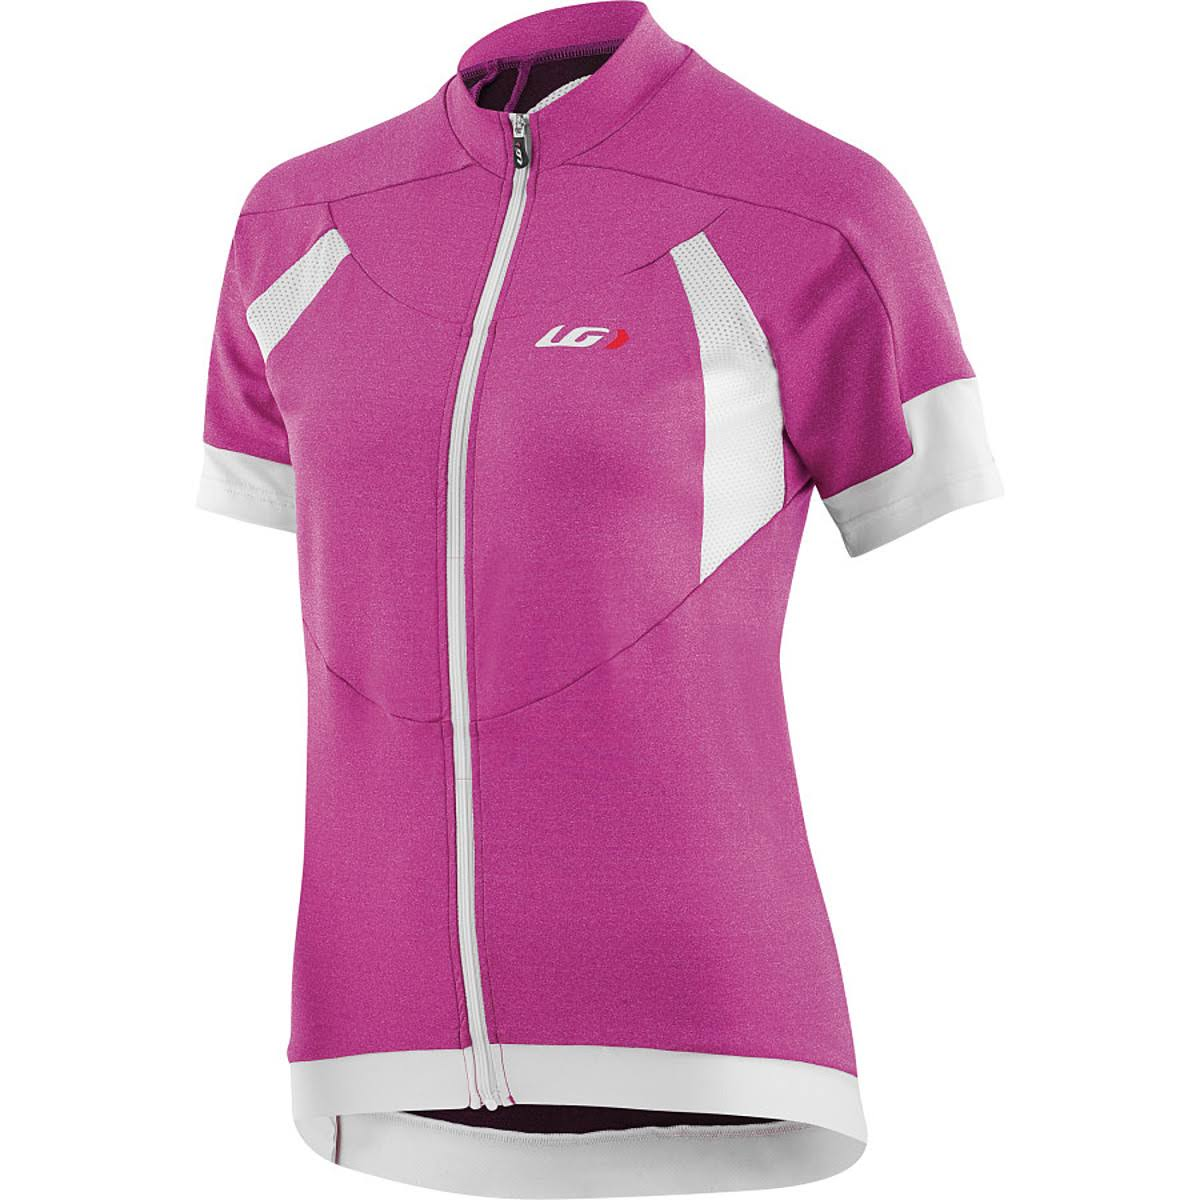 Louis Garneau Women's Icefit Jersey - Small - Candy Purple